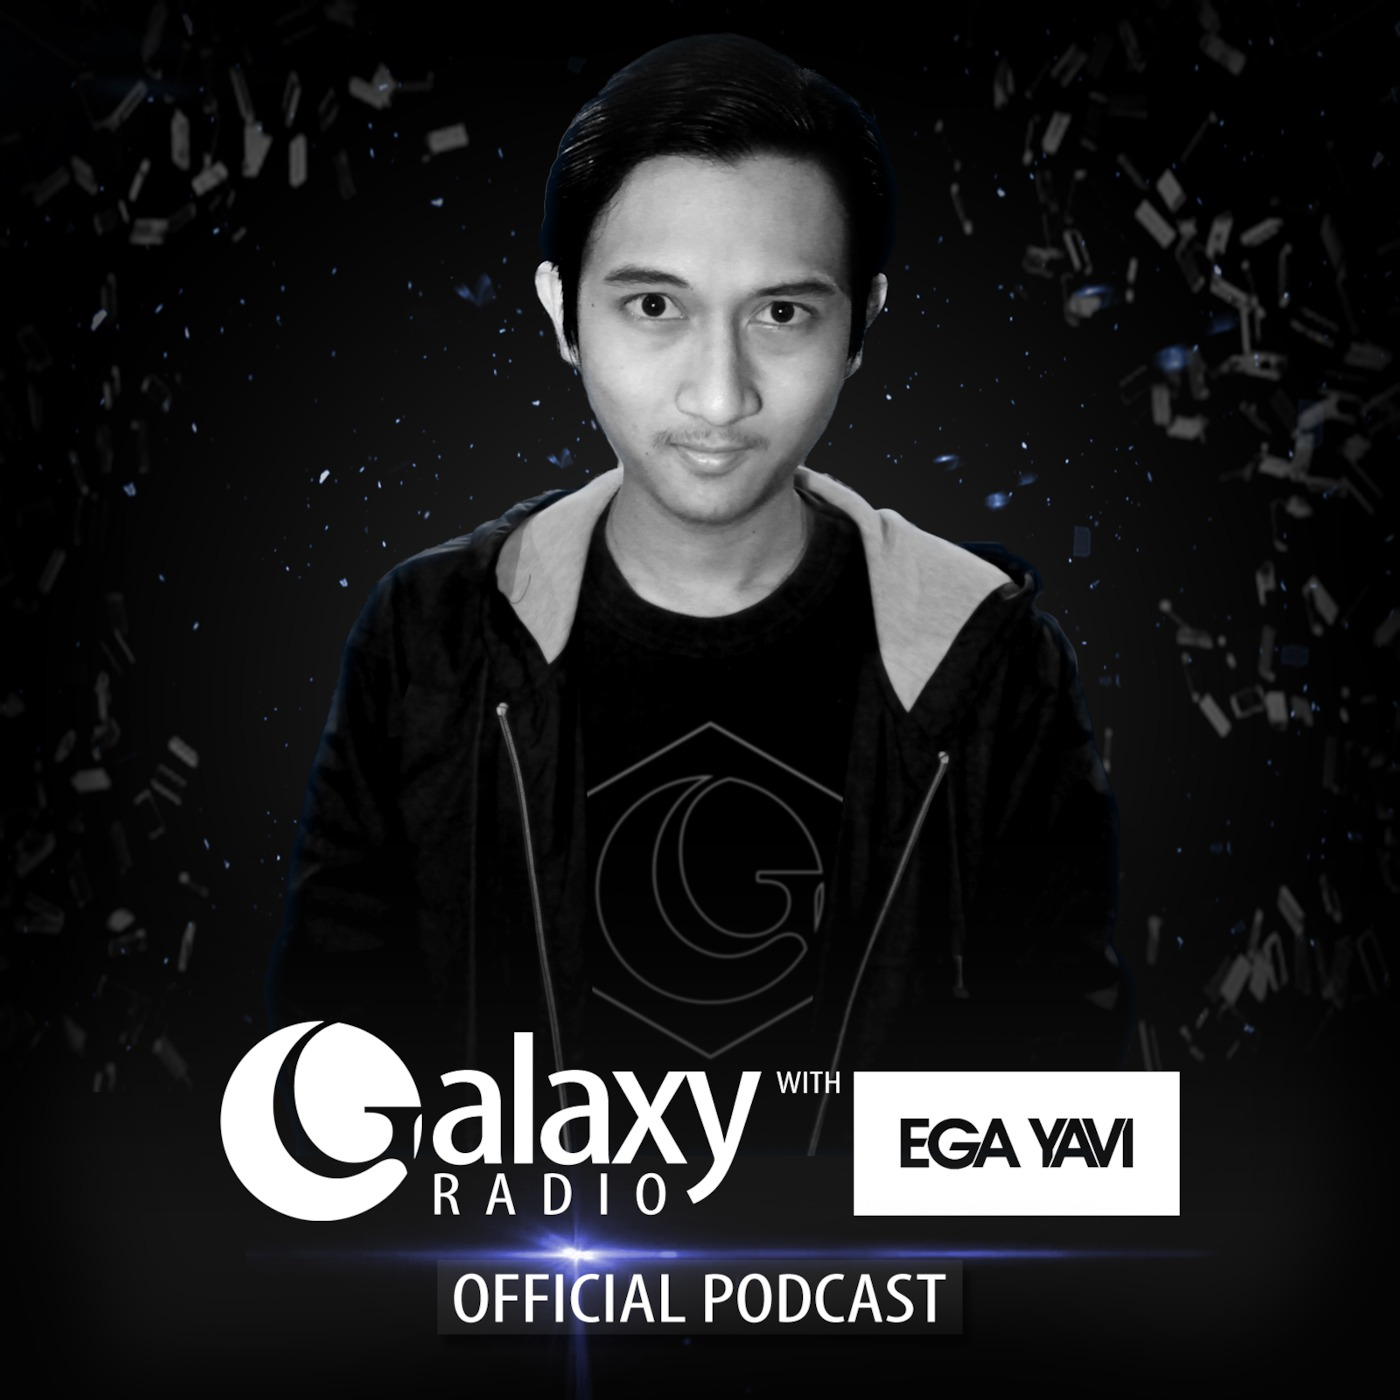 Galaxy Radio with Ega Yavi